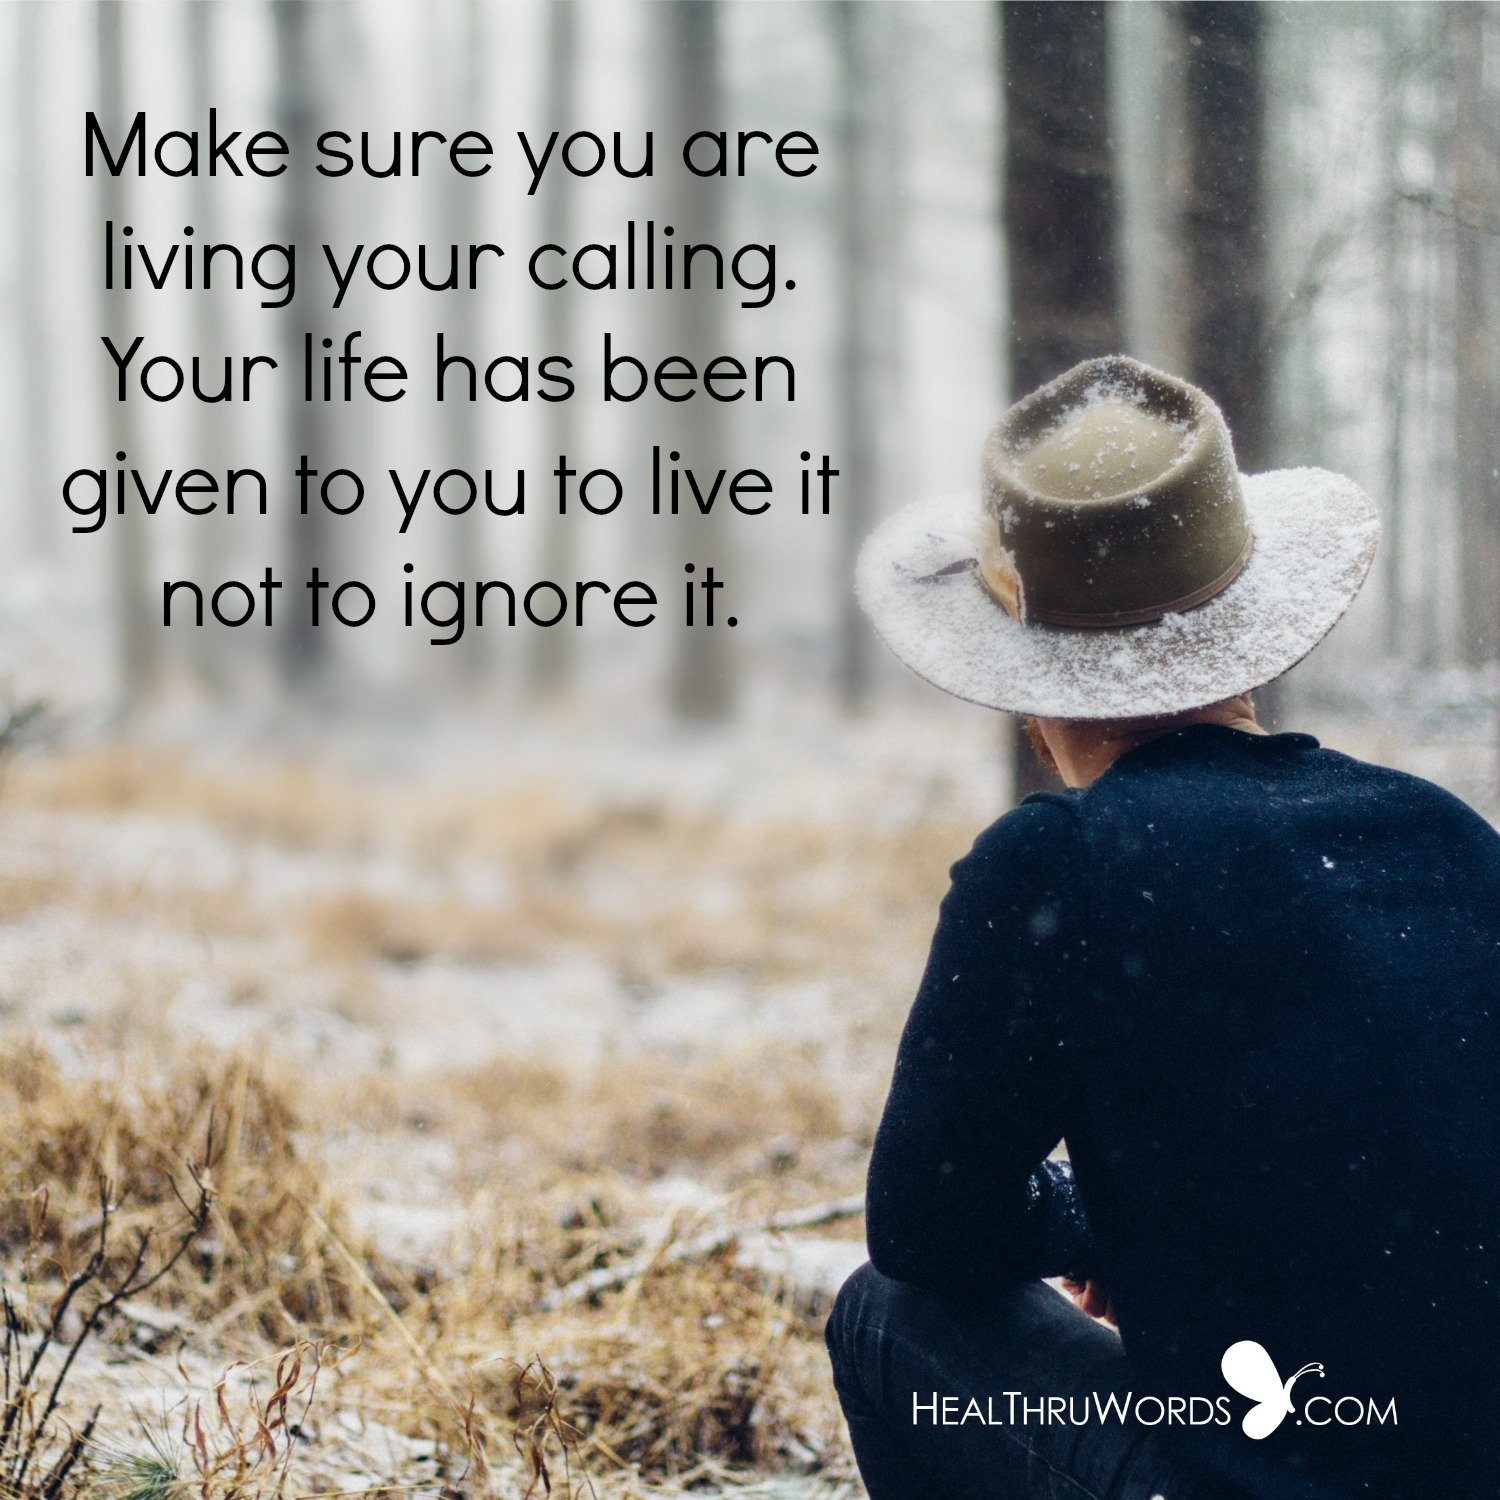 Inspirational Image: What Is Your Call